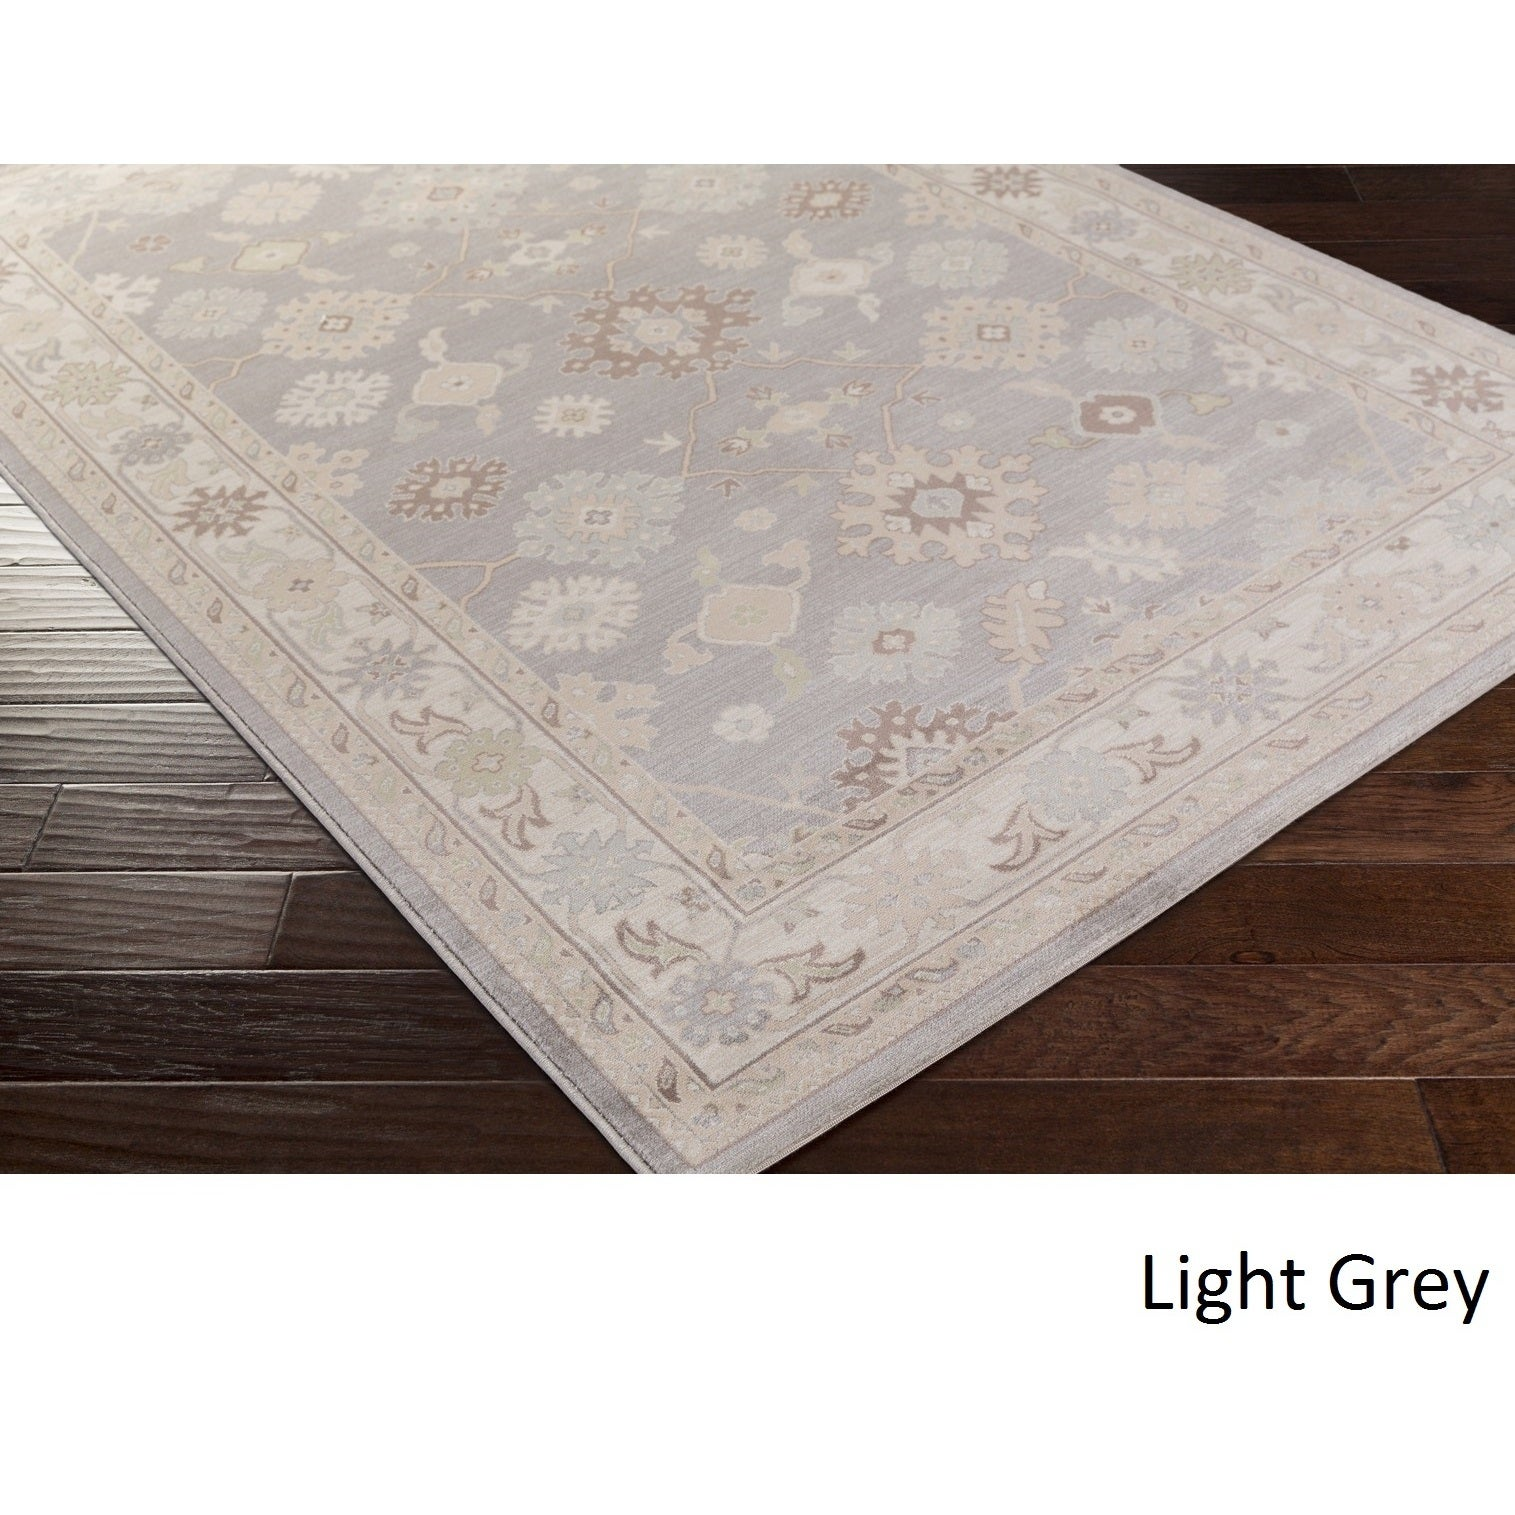 Meticulously Woven McPhatter Rug (7'8 x 10'6) (Light Grey...